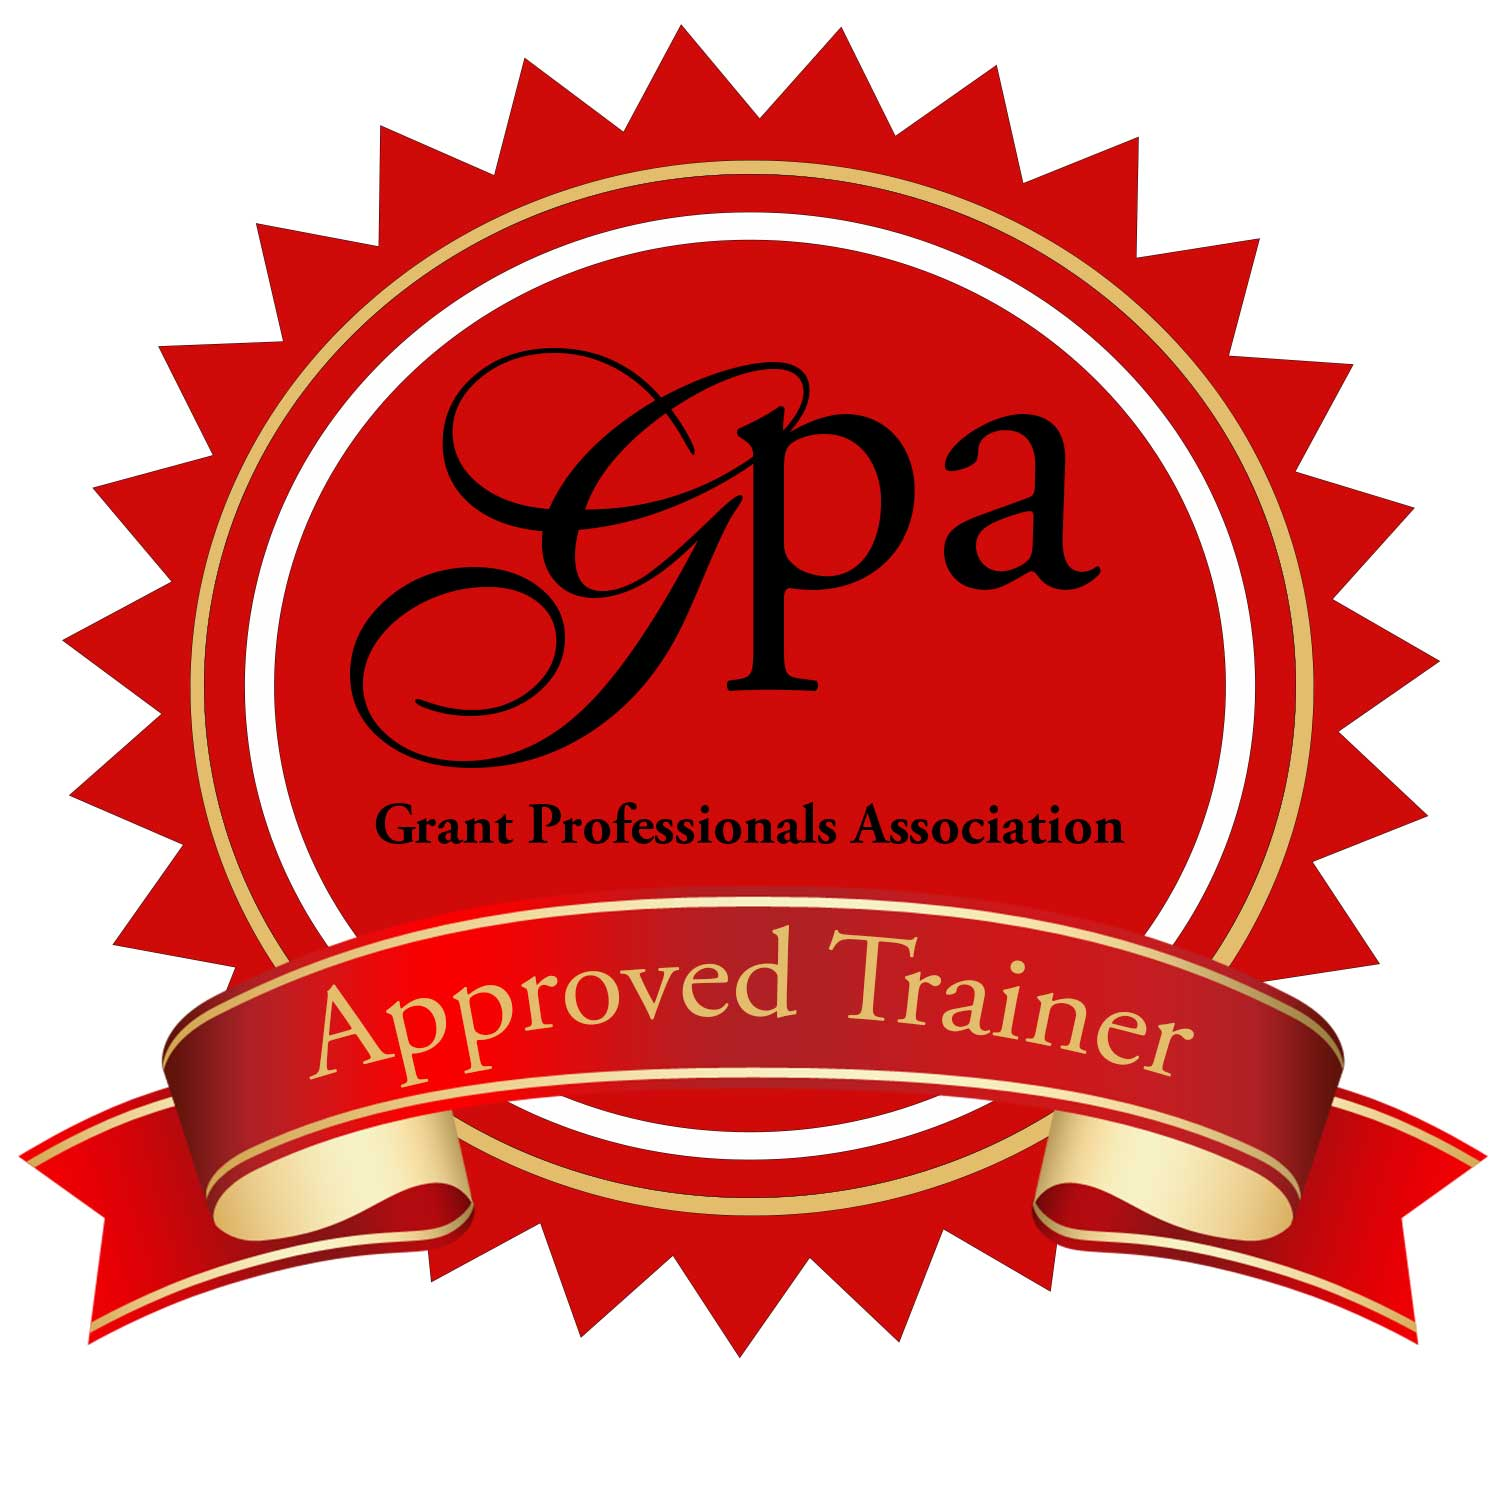 GPA Approved Trainer